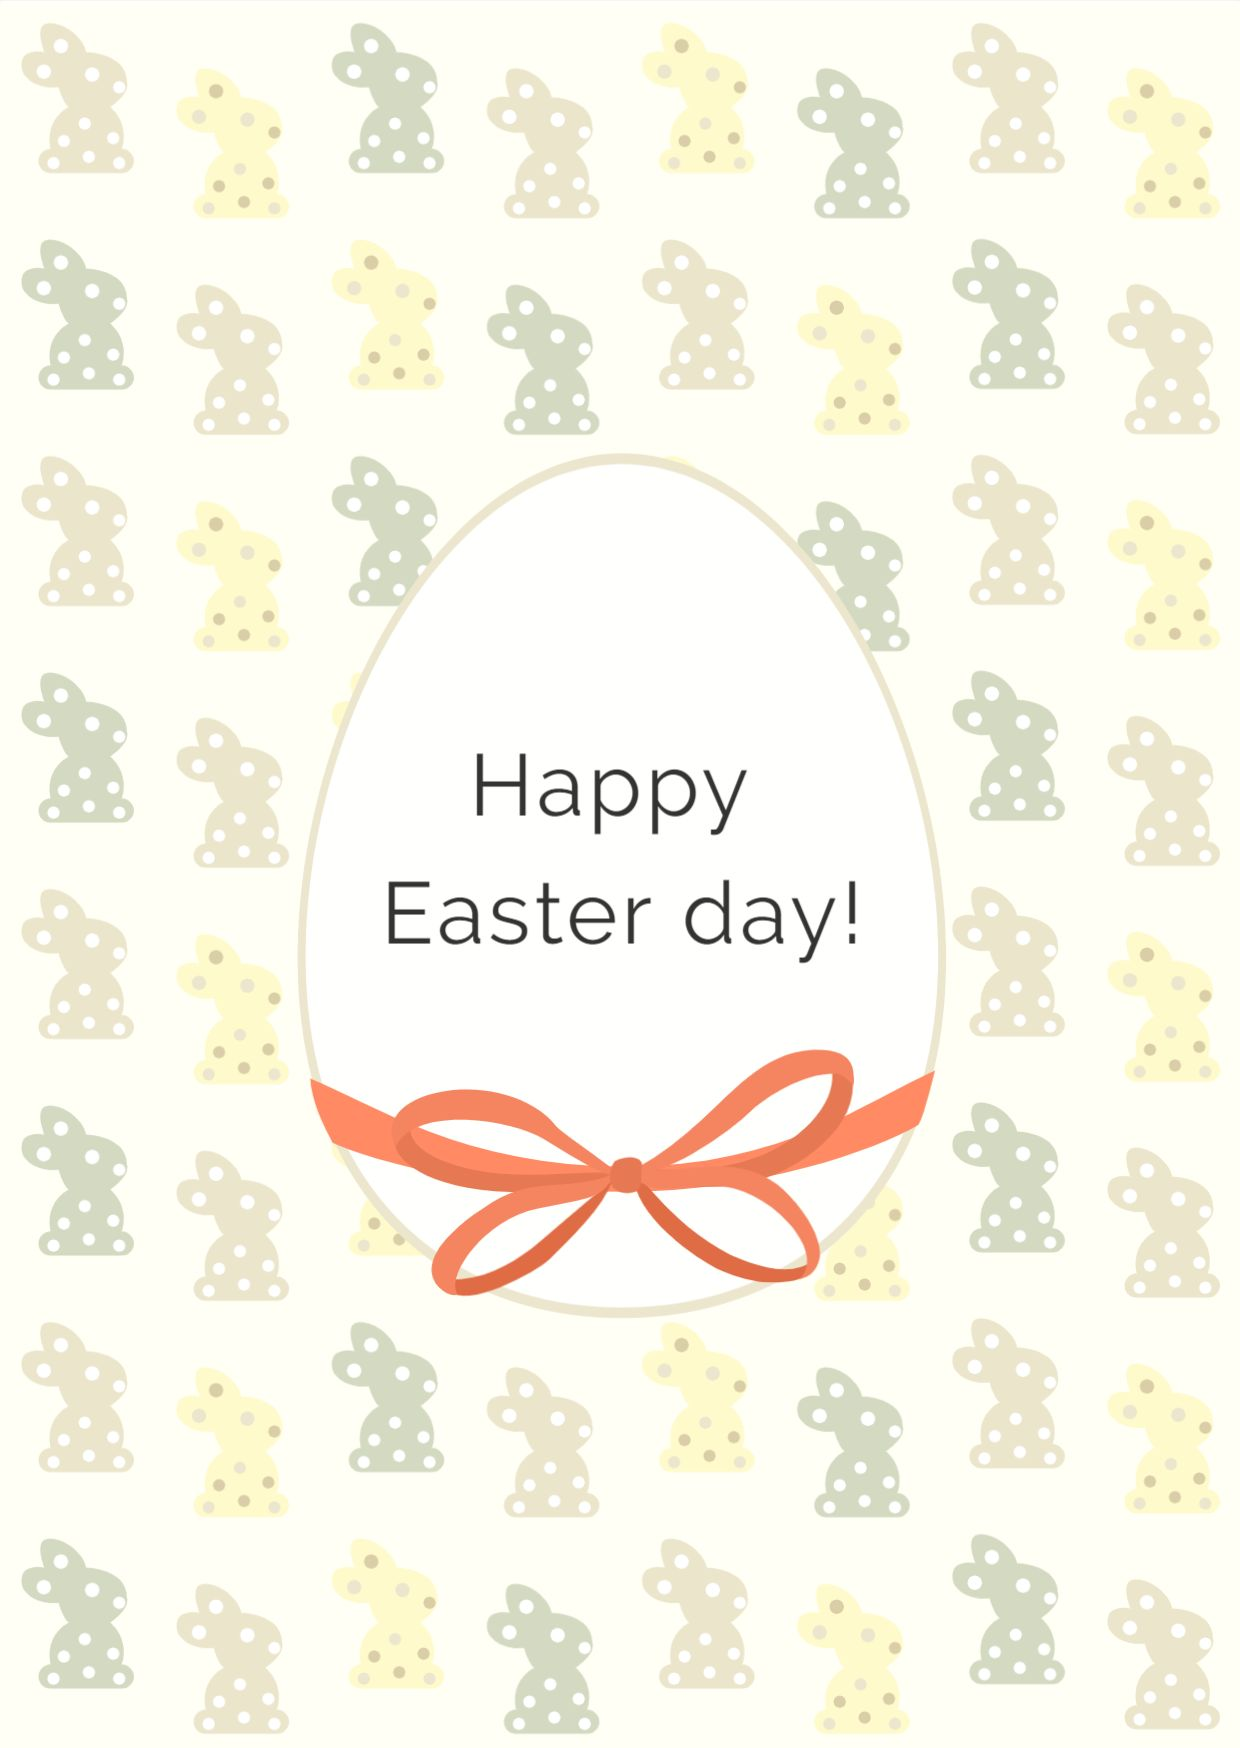 Greeting Card Template with Bunnies